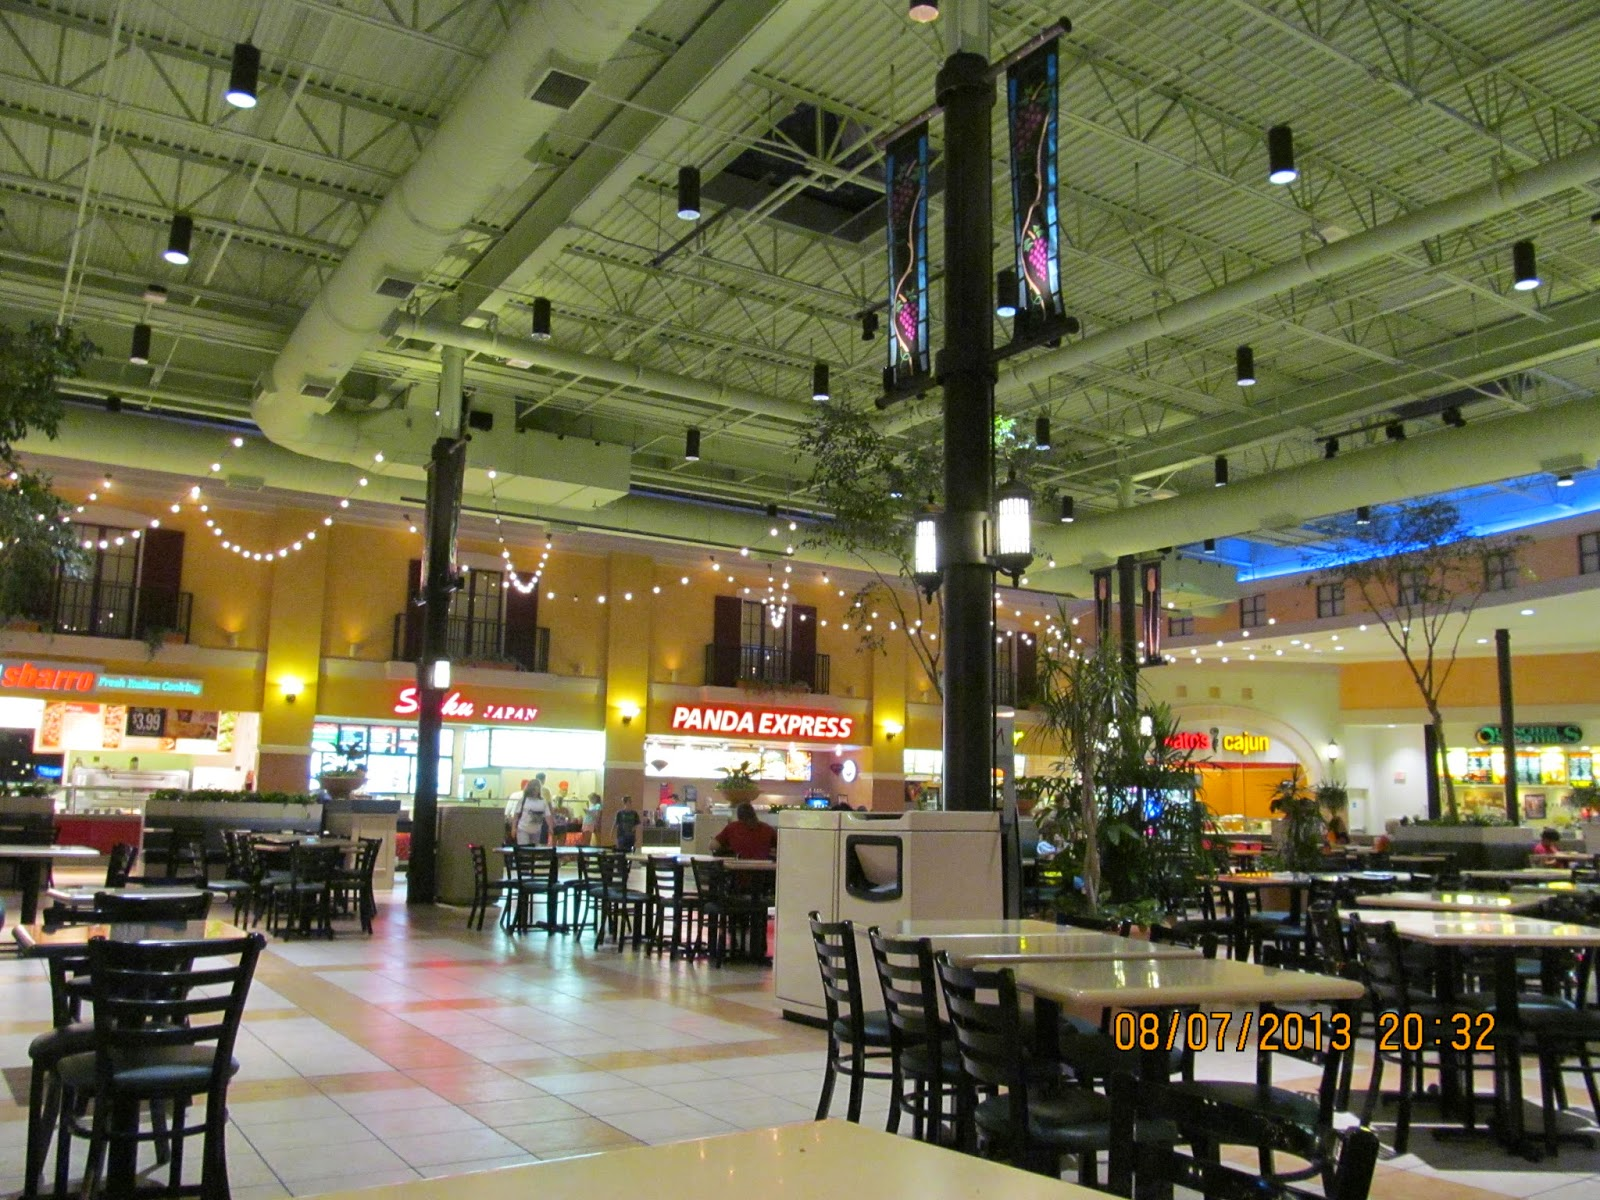 "Photo of Market Place Shopping Center - Champaign, IL, United States by Joe T. See all 15 photos ""Plenty of parking and near other shopping stops - Target, Walmart, Best Buy, etc/5(30)."